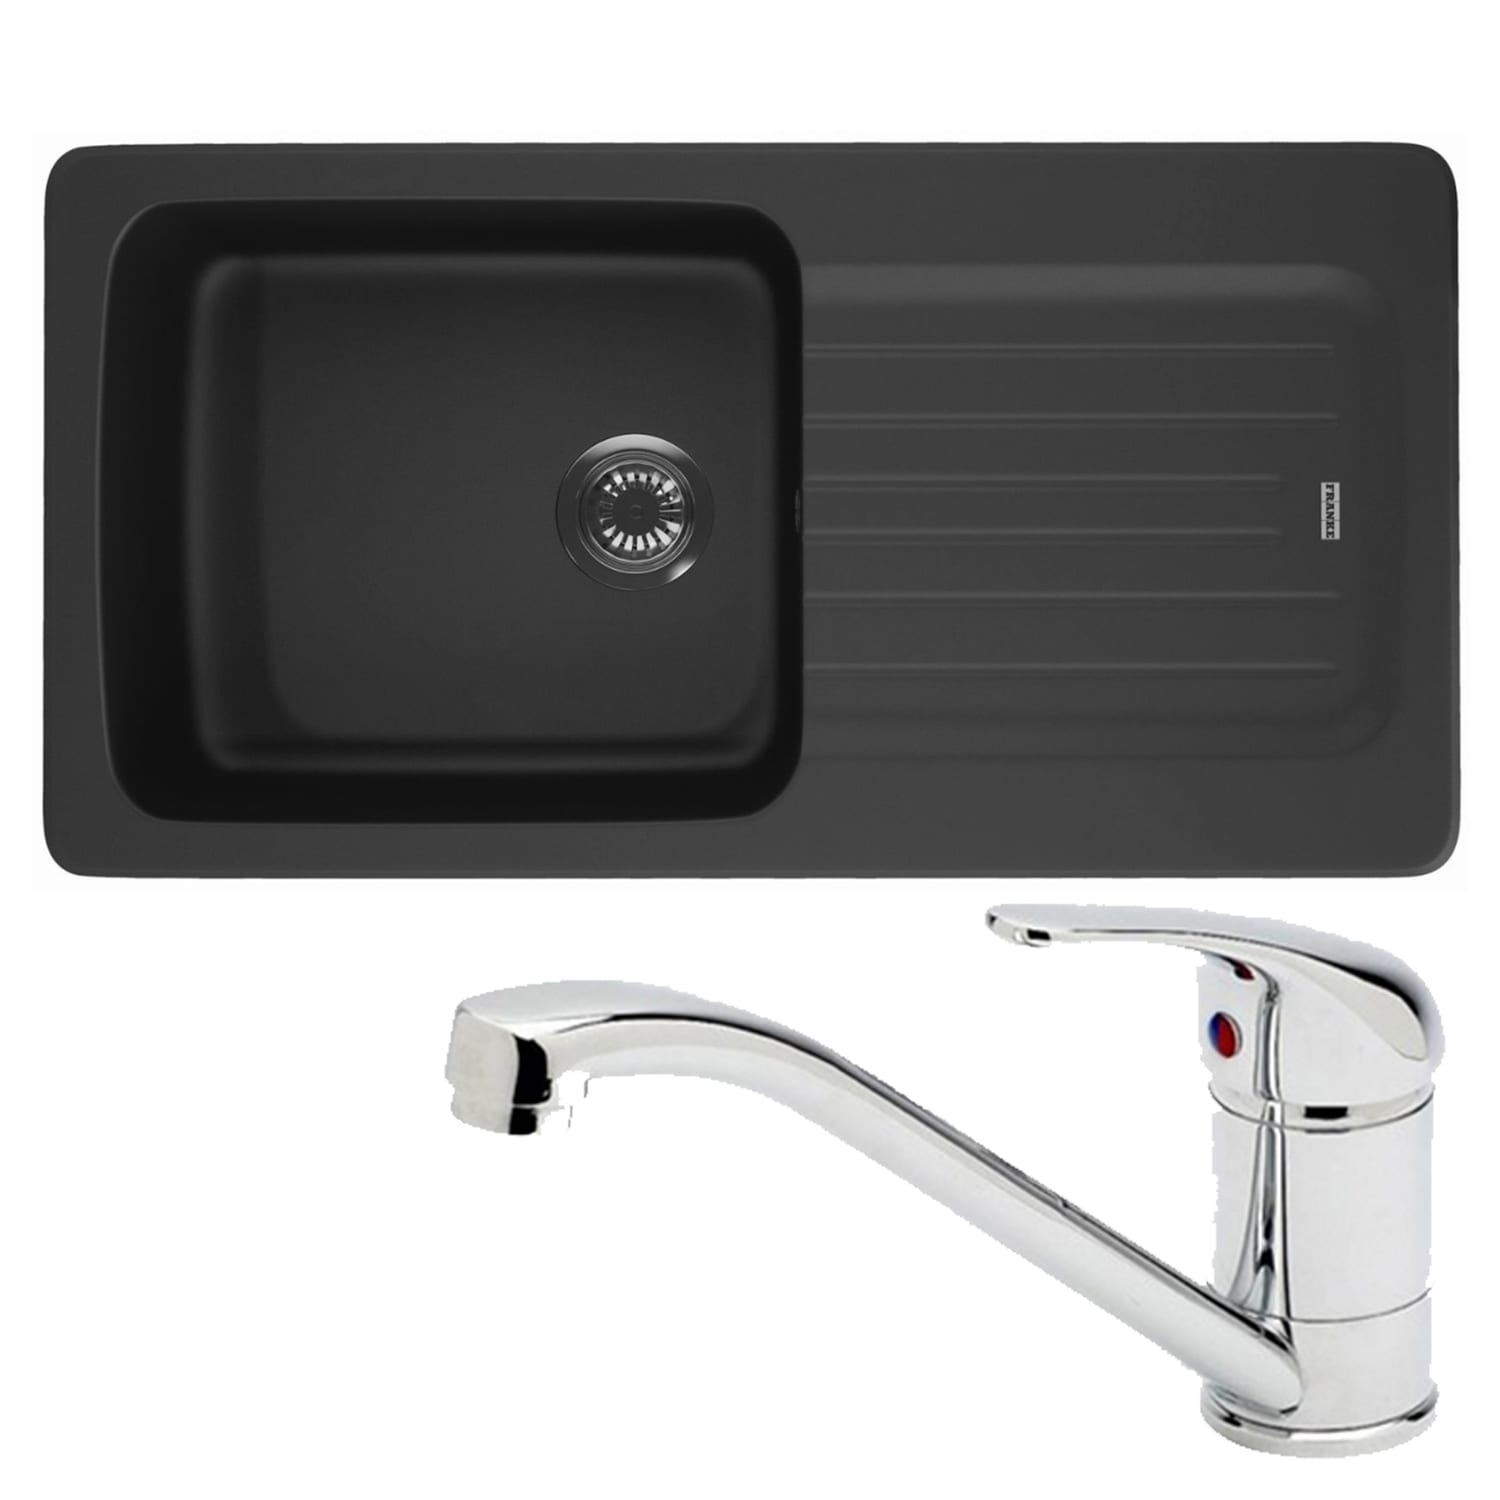 Franke Black Kitchen Sink: Franke Aveta 1.0 Bowl Black Tectonite Kitchen Sink